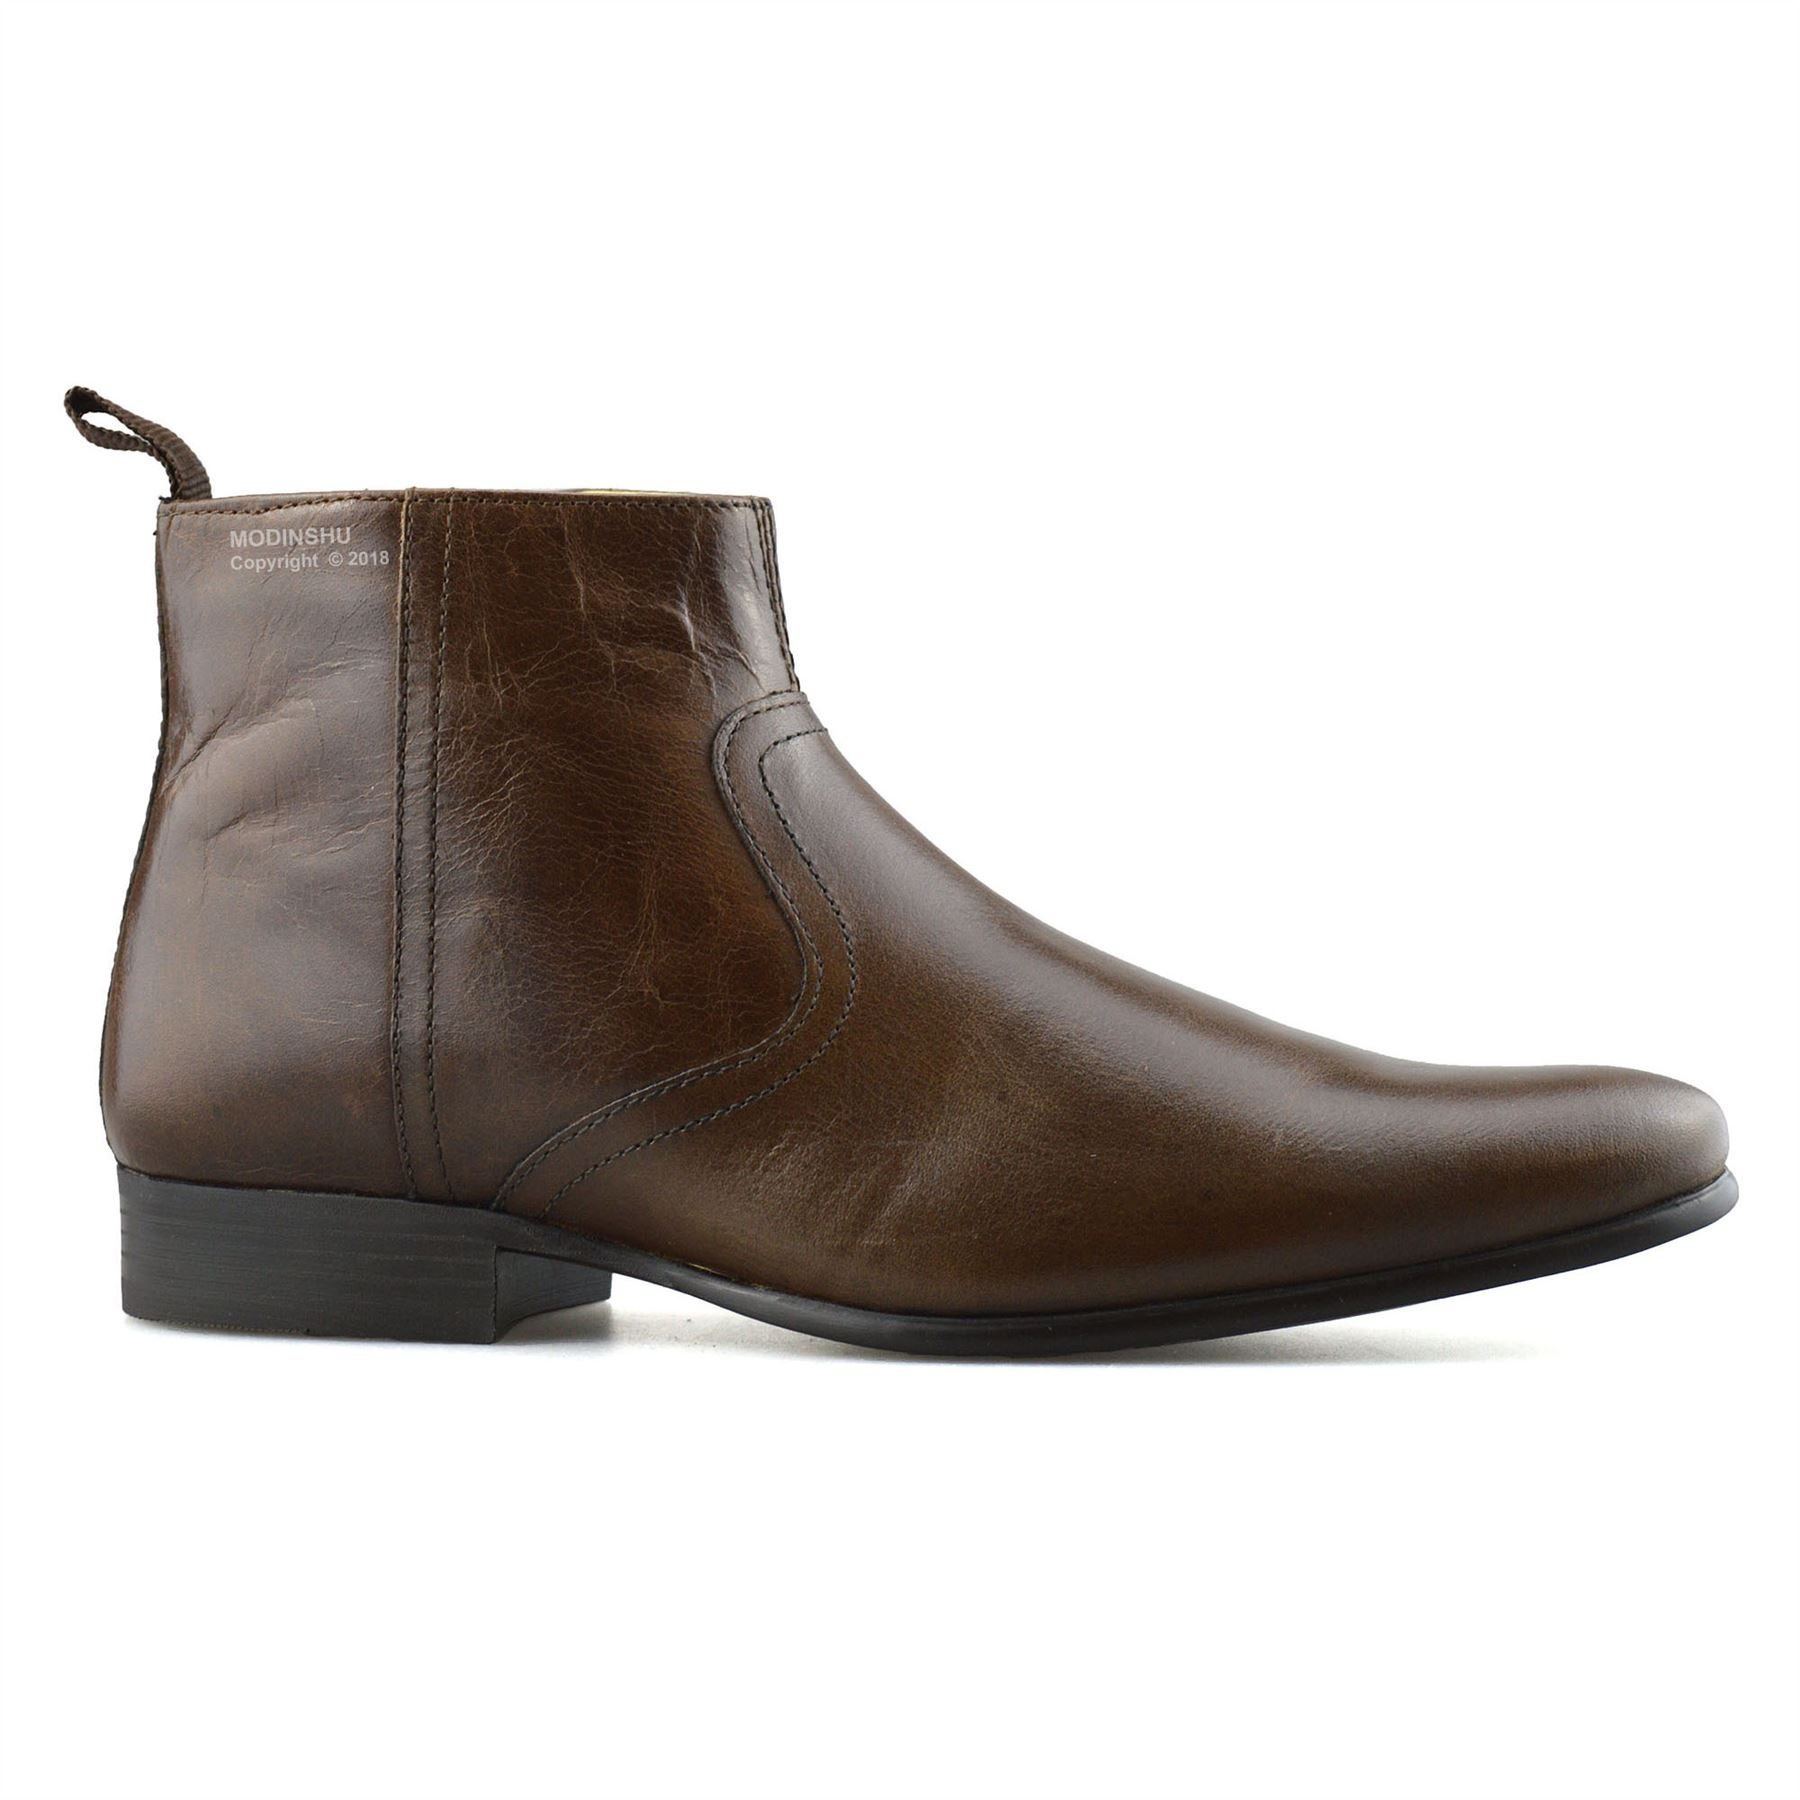 Mens-New-Leather-Zip-Up-Smart-Formal-Chelsea-Dealer-Work-Ankle-Boots-Shoes-Size thumbnail 17